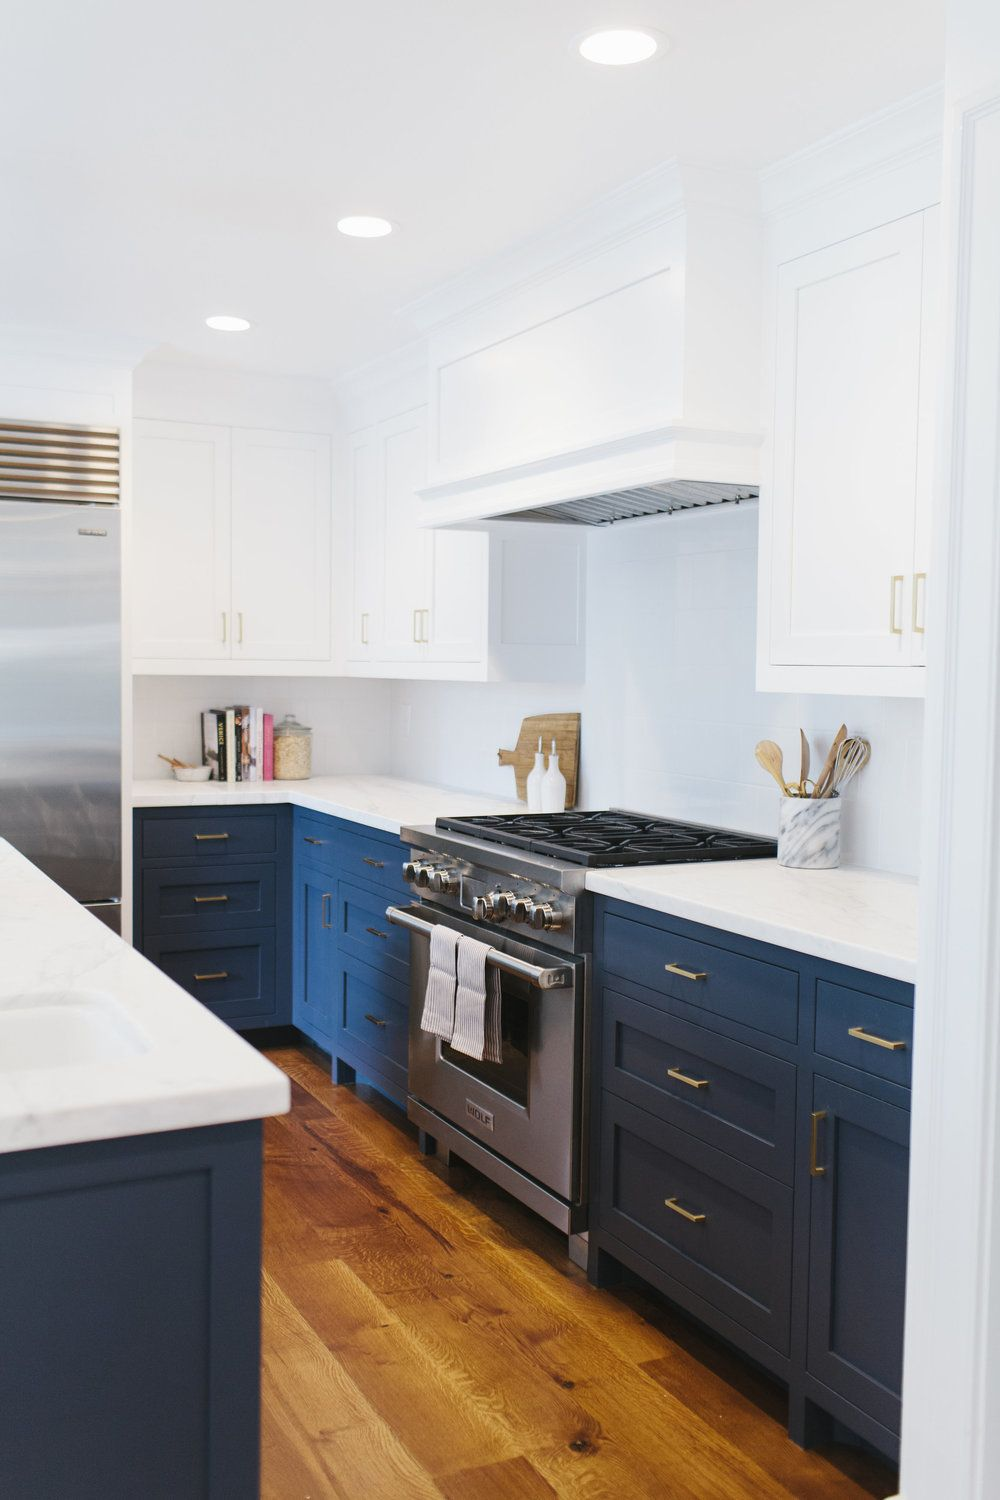 lynwood remodel: kitchen | kitchens | pinterest | kitchen, kitchen